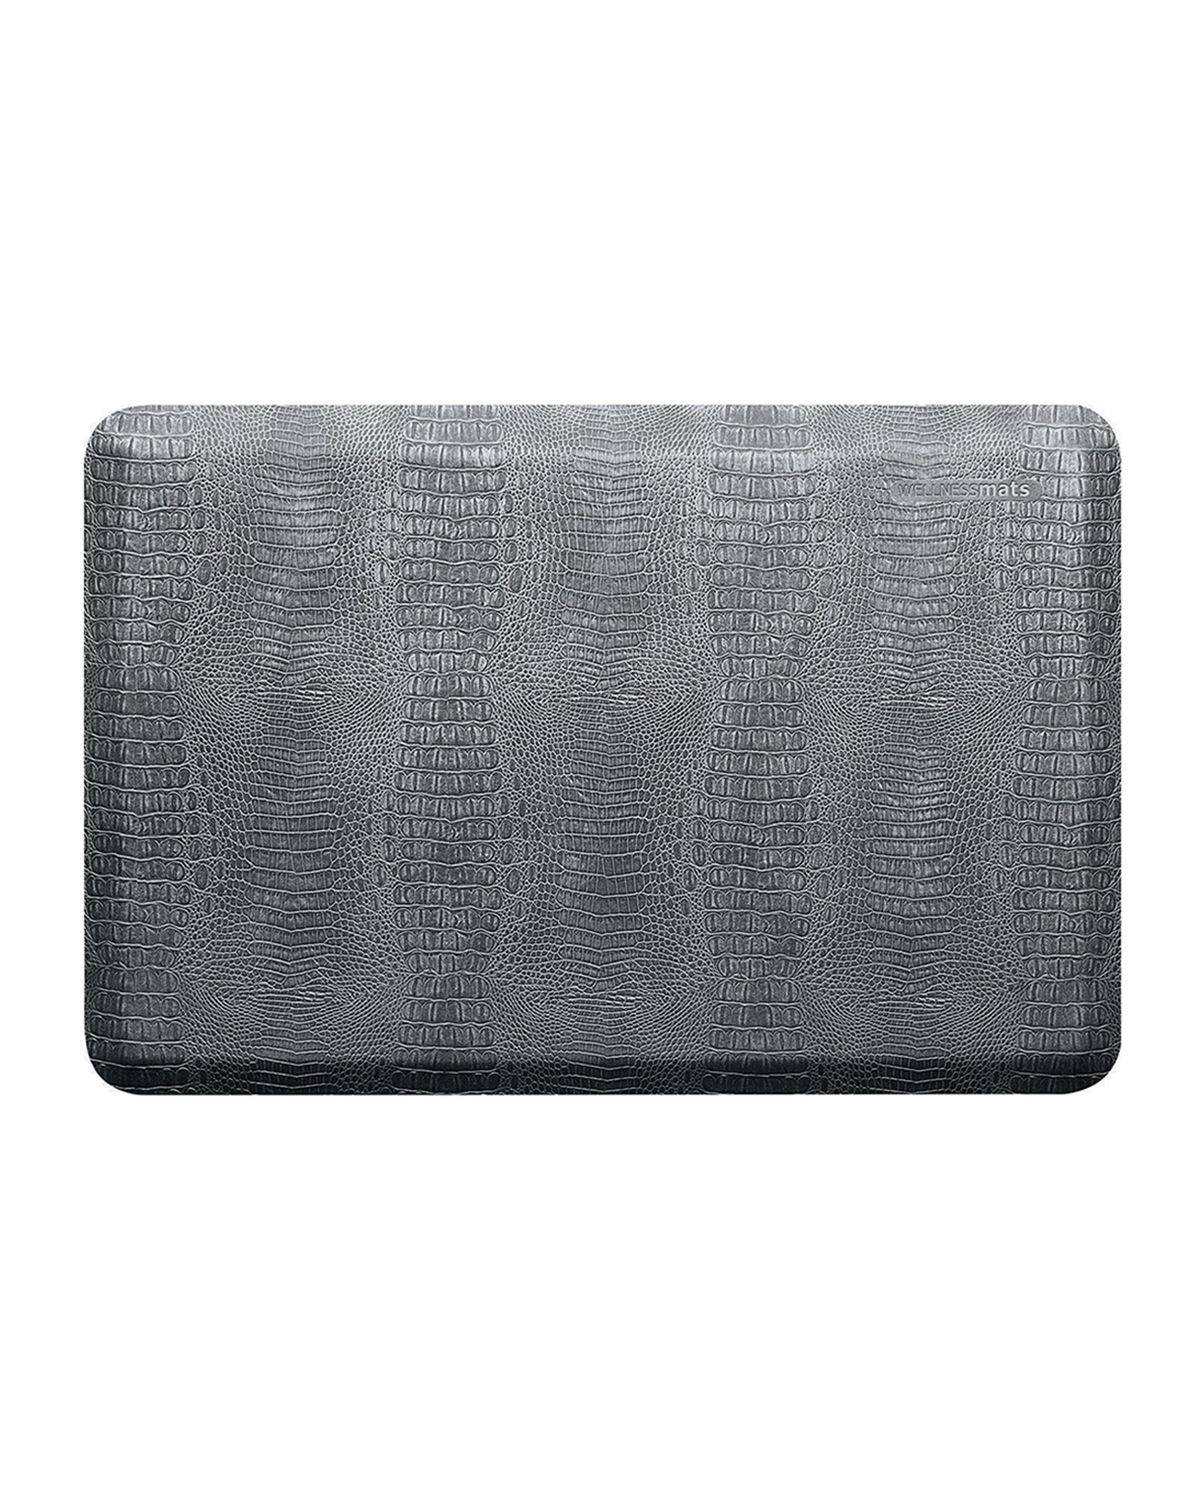 WellnessMats Croc Anti-Fatigue Kitchen Mat, 3' x 2'